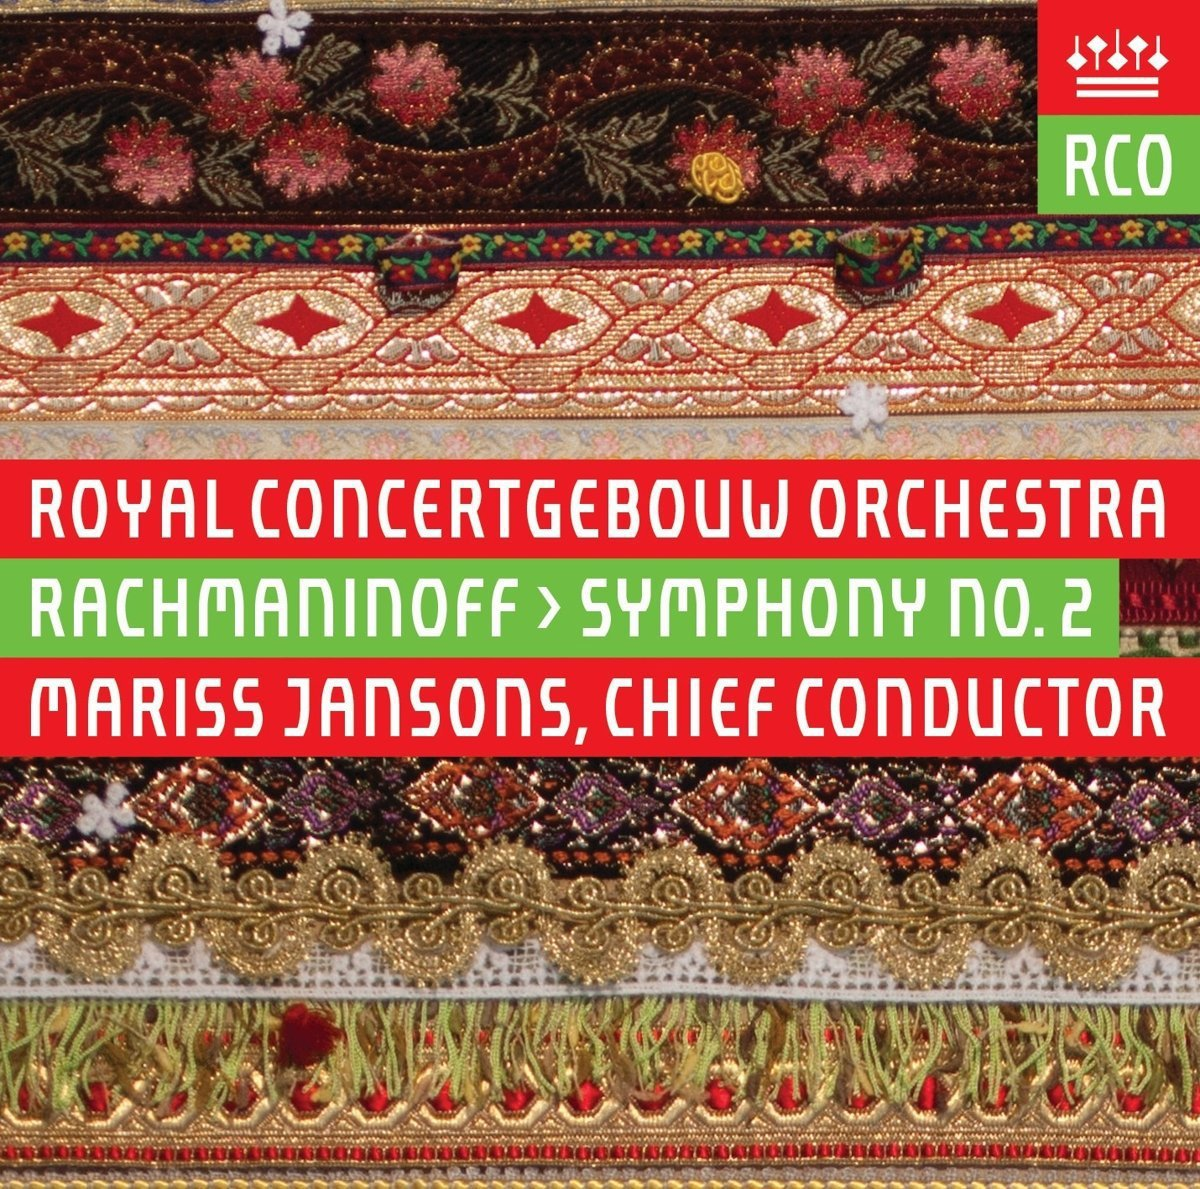 Rachmaninoff: Symphony No. 2 by Rco Live Holland